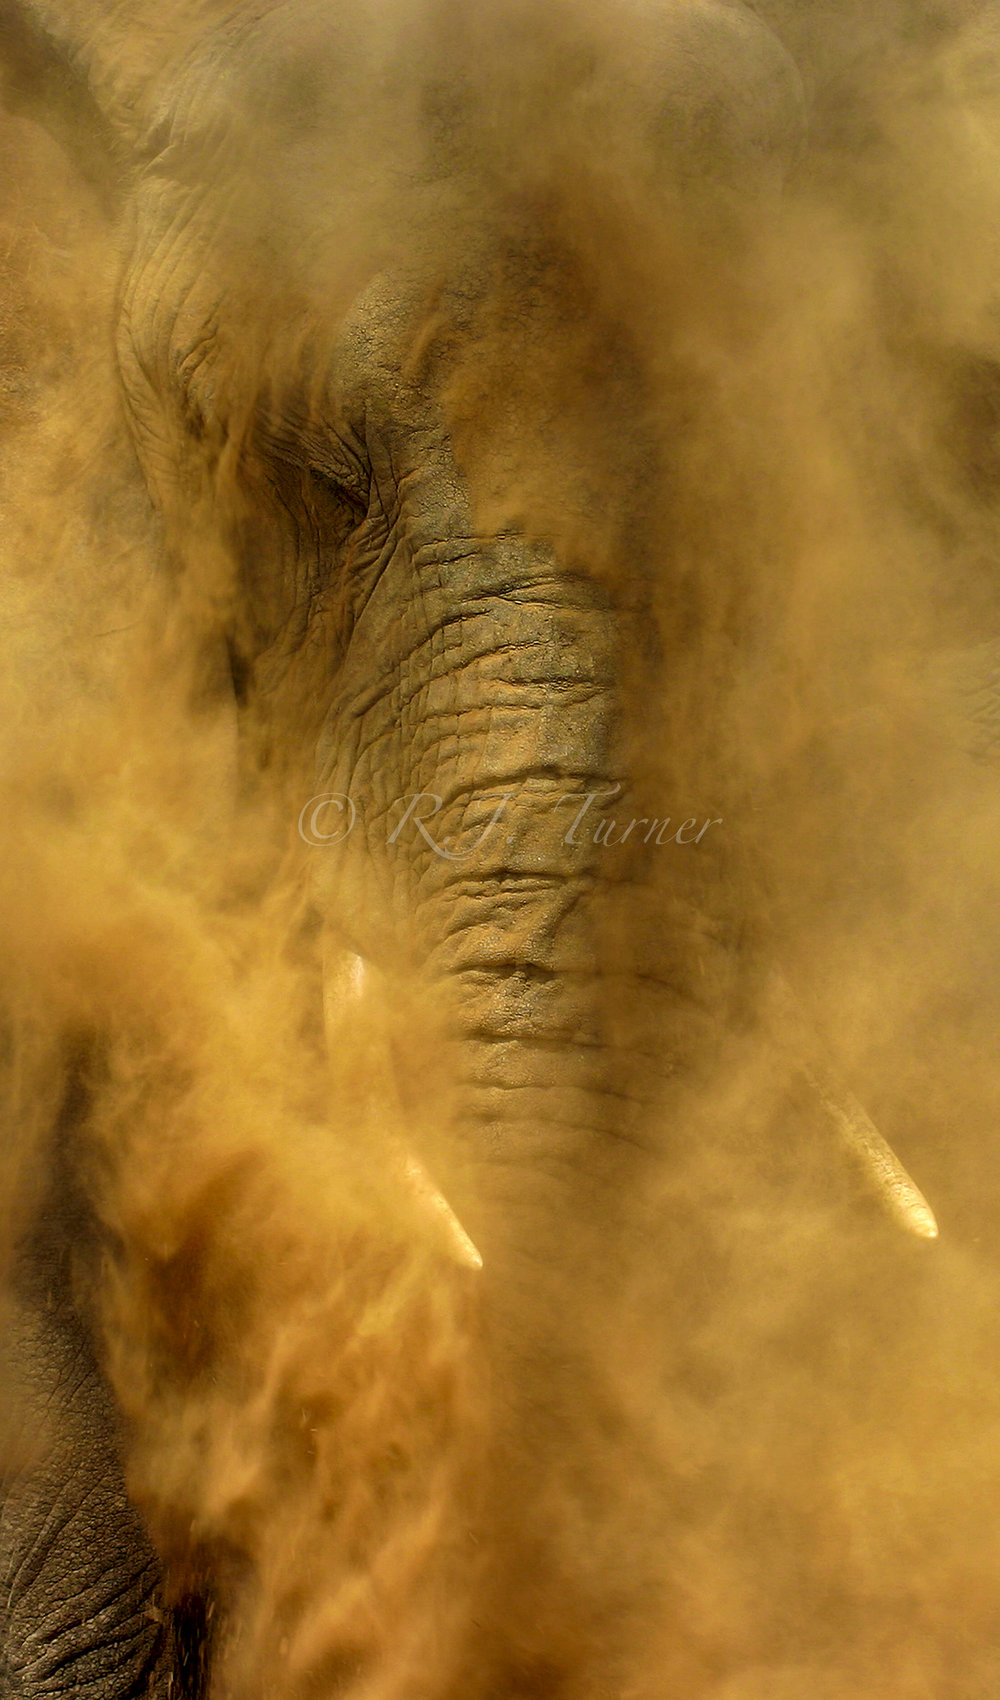 In 2016 R.J. was selected as one of the 65 World's Top Wildlife Photographers to become a part of the coffee table book and art exhibition  Remembering Elephants.  Sharing their work and love of elephants,  Remembering Elephants  shows the world the beauty and magic of these gentle giants, and why we must protect this incredible species from mass extinction due to poaching. In September the coffee-table book and art exhibition premiered at La Galleria, Pall Mall in London, with all proceeds going to anti-poaching efforts in Africa. Visit  www.rememberingelephants.com  for more information.